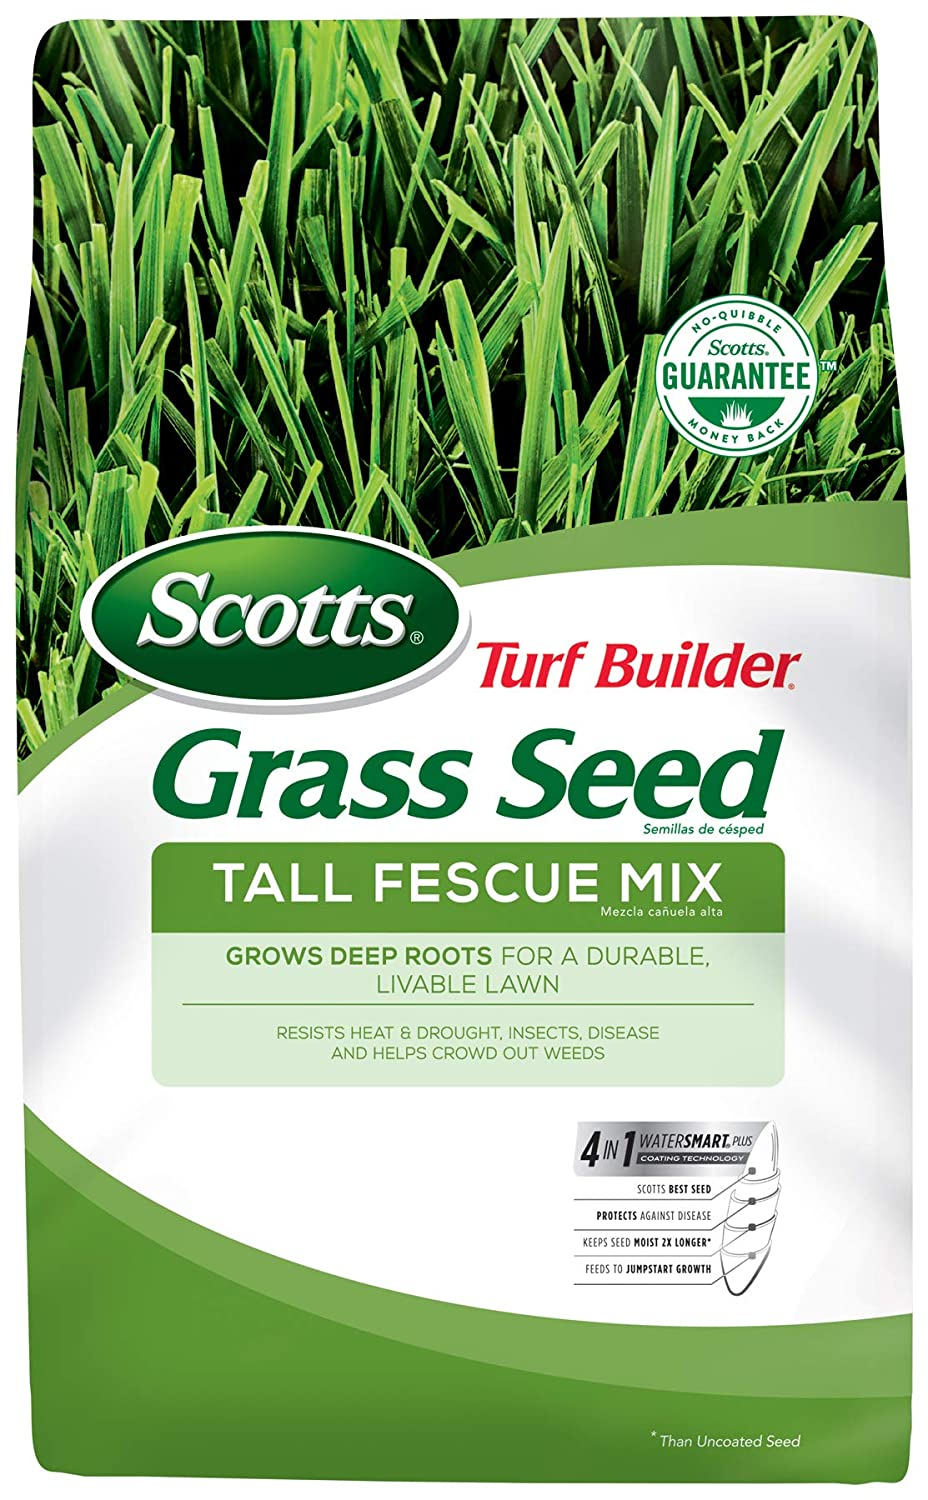 Scotts Turf Builder Grass Seed Tall Fescue Mix - 7 Lb. | Designed For Full Sun & Partial Shade | Use to Seed New Lawn or Overseed Existing Lawn | Grows Deep Roots For A Durable, Livable Lawn |Seeds Up to 1,750 sq. ft.